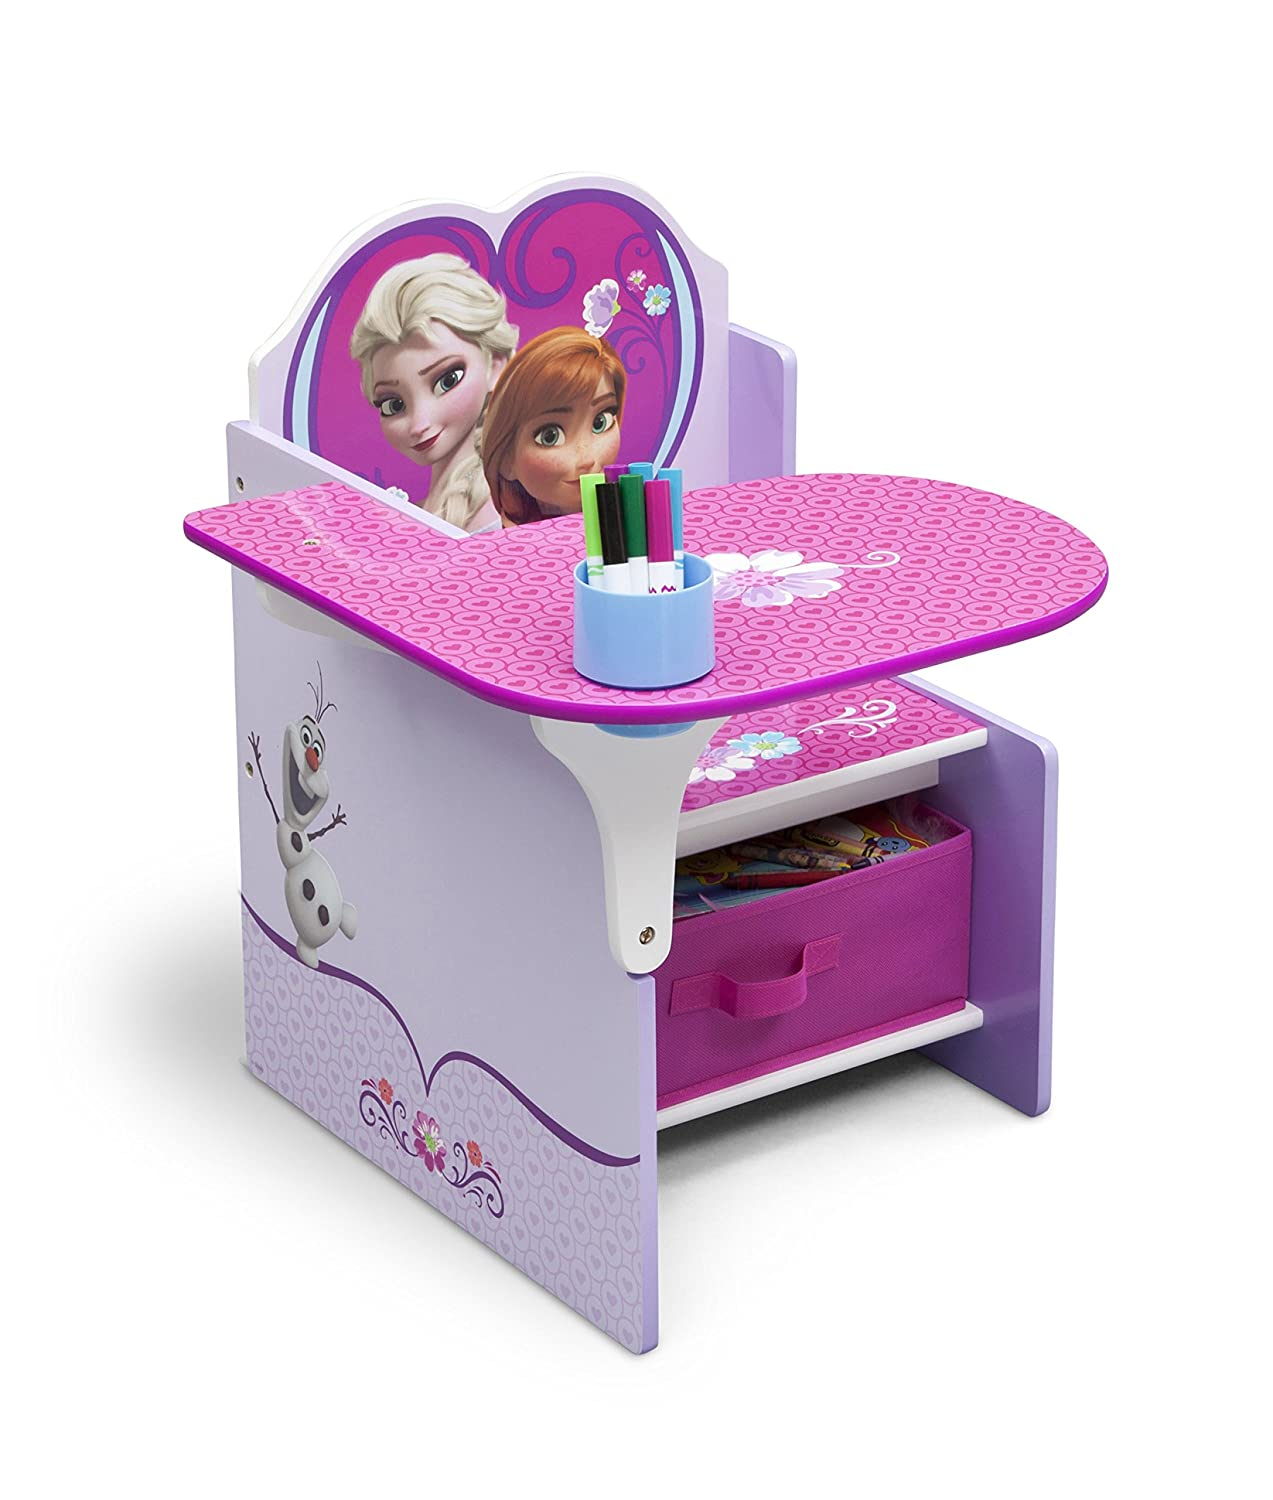 Amazon.com: Delta Children Chair Desk With Storage Bin, Disney ...